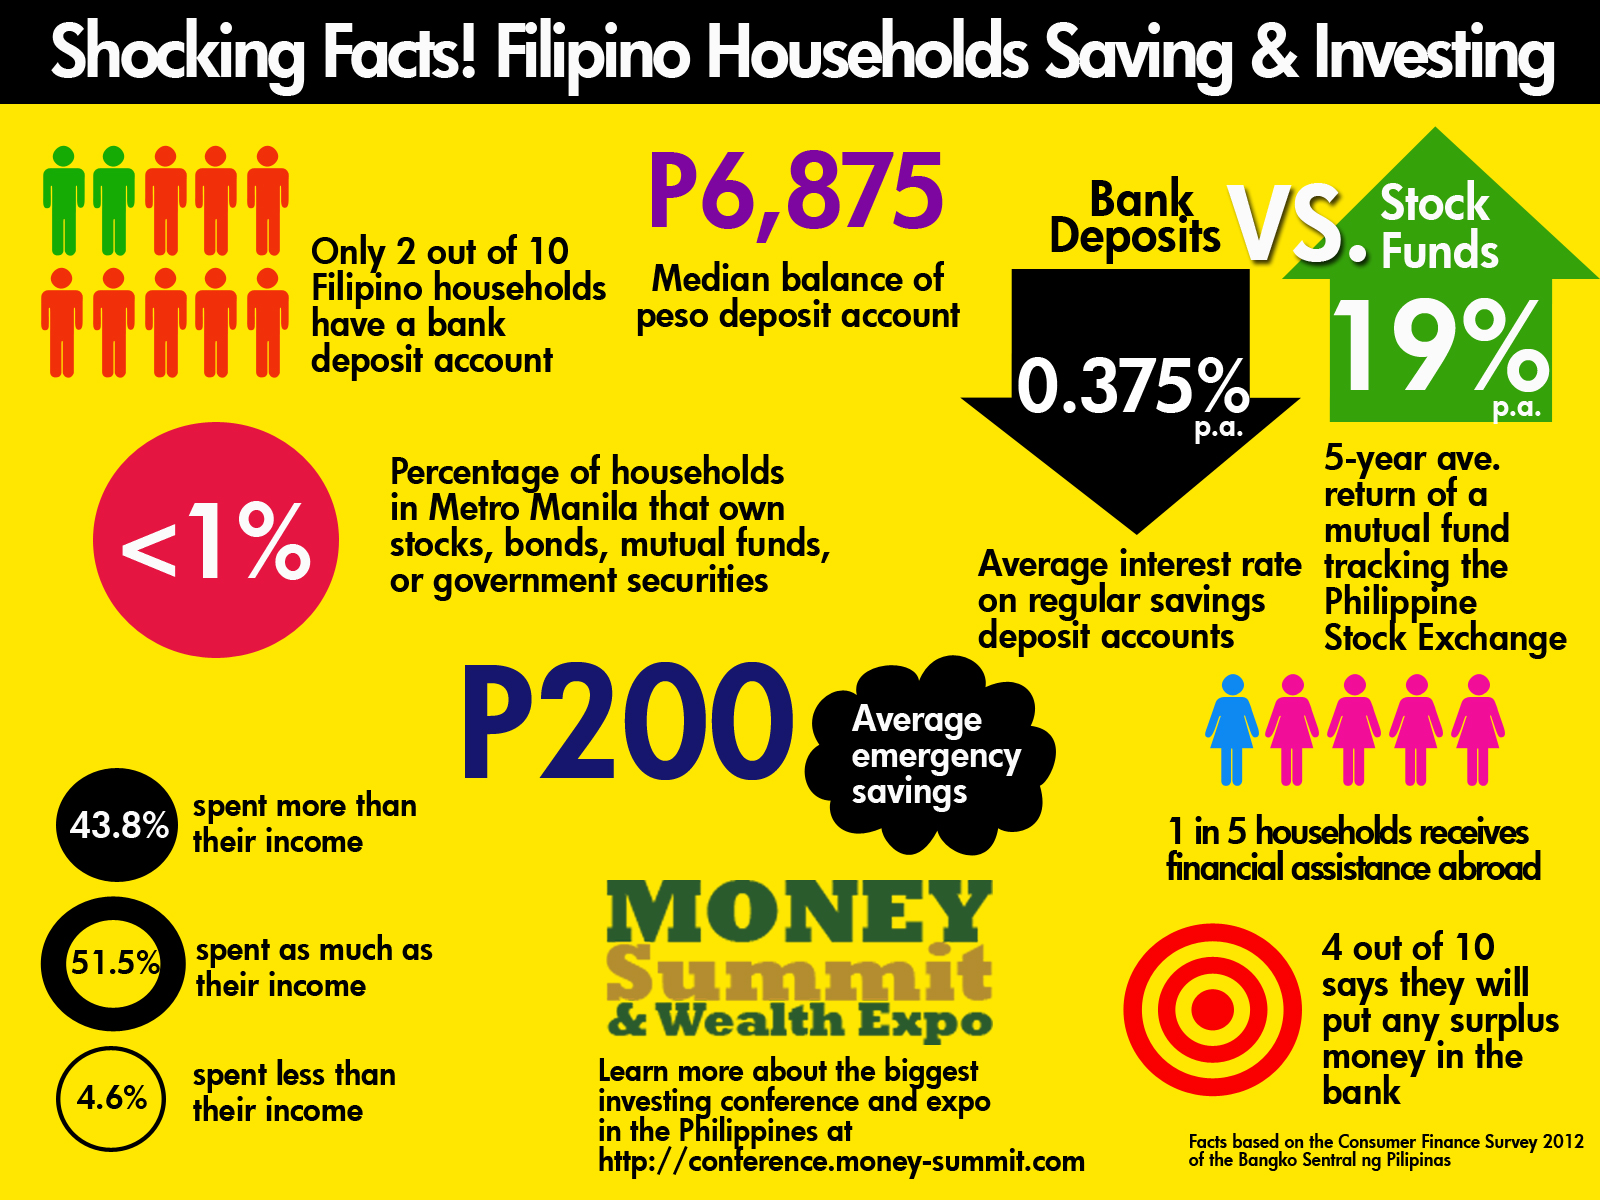 Bad Planen Programm Less Than 1 Of Filipino Households Invests In Securities